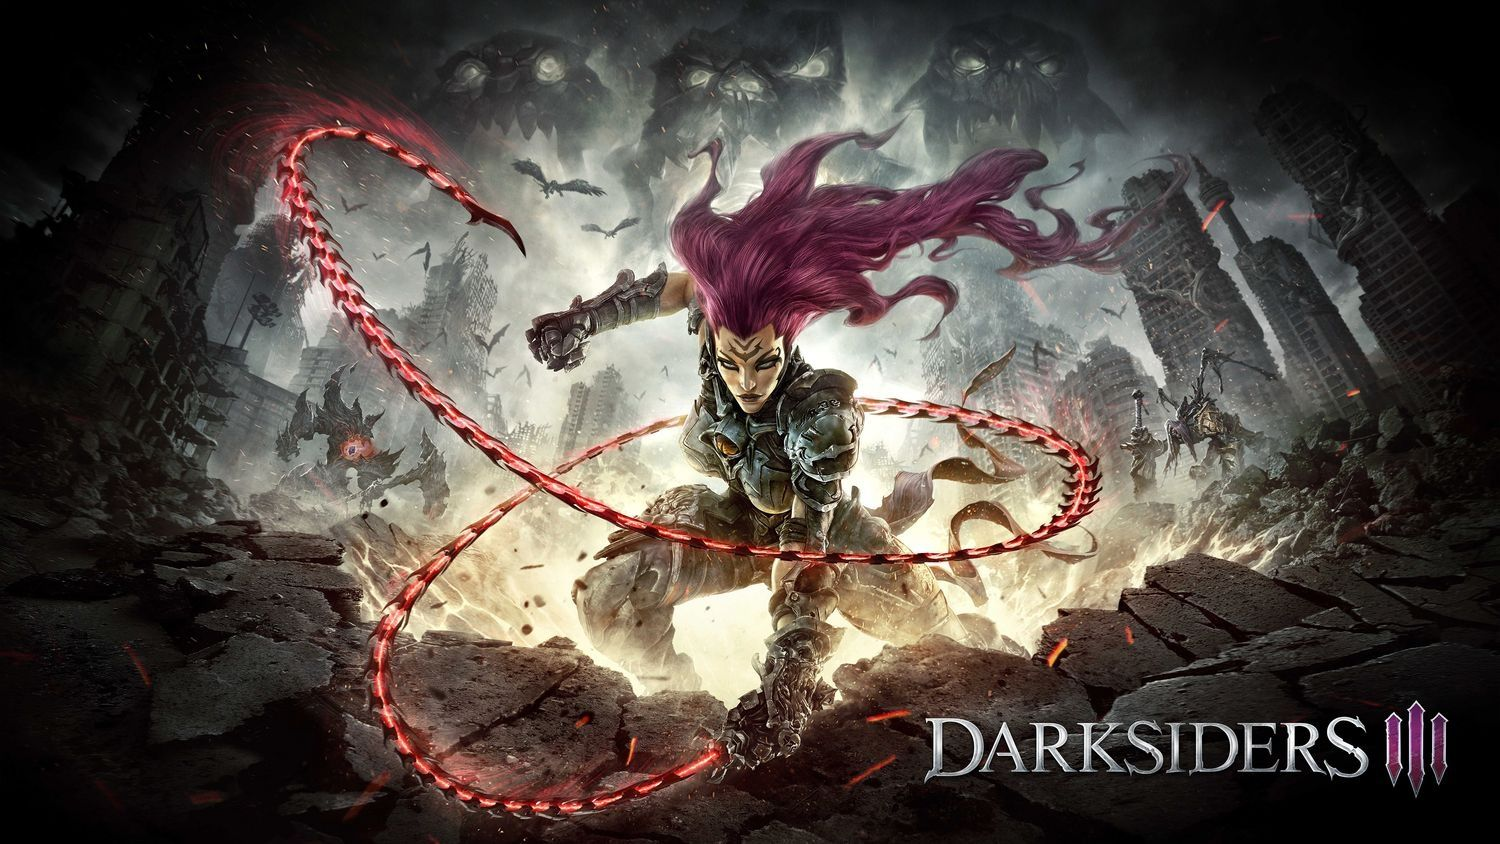 Darksiders III (PC) - 13